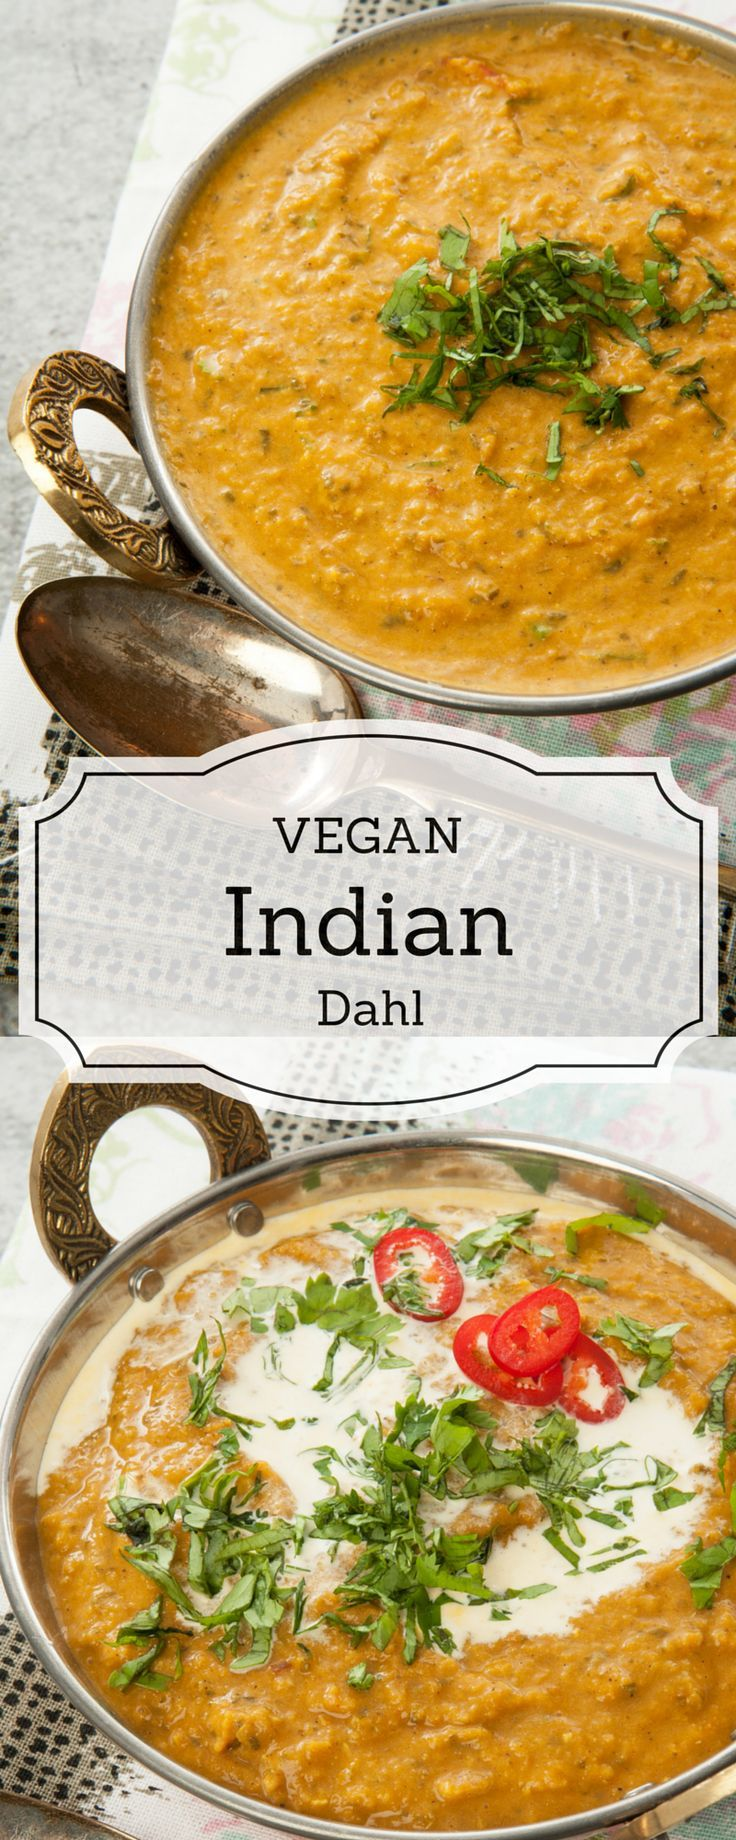 Authentic Indian Dahl Recipe - The perfect comfort food. Vegan, vegetarian, Dairy Free and Gluten Free. Can be made on the stove or in the Thermomix. Instructions are for both (Indian Vegan Recipes)